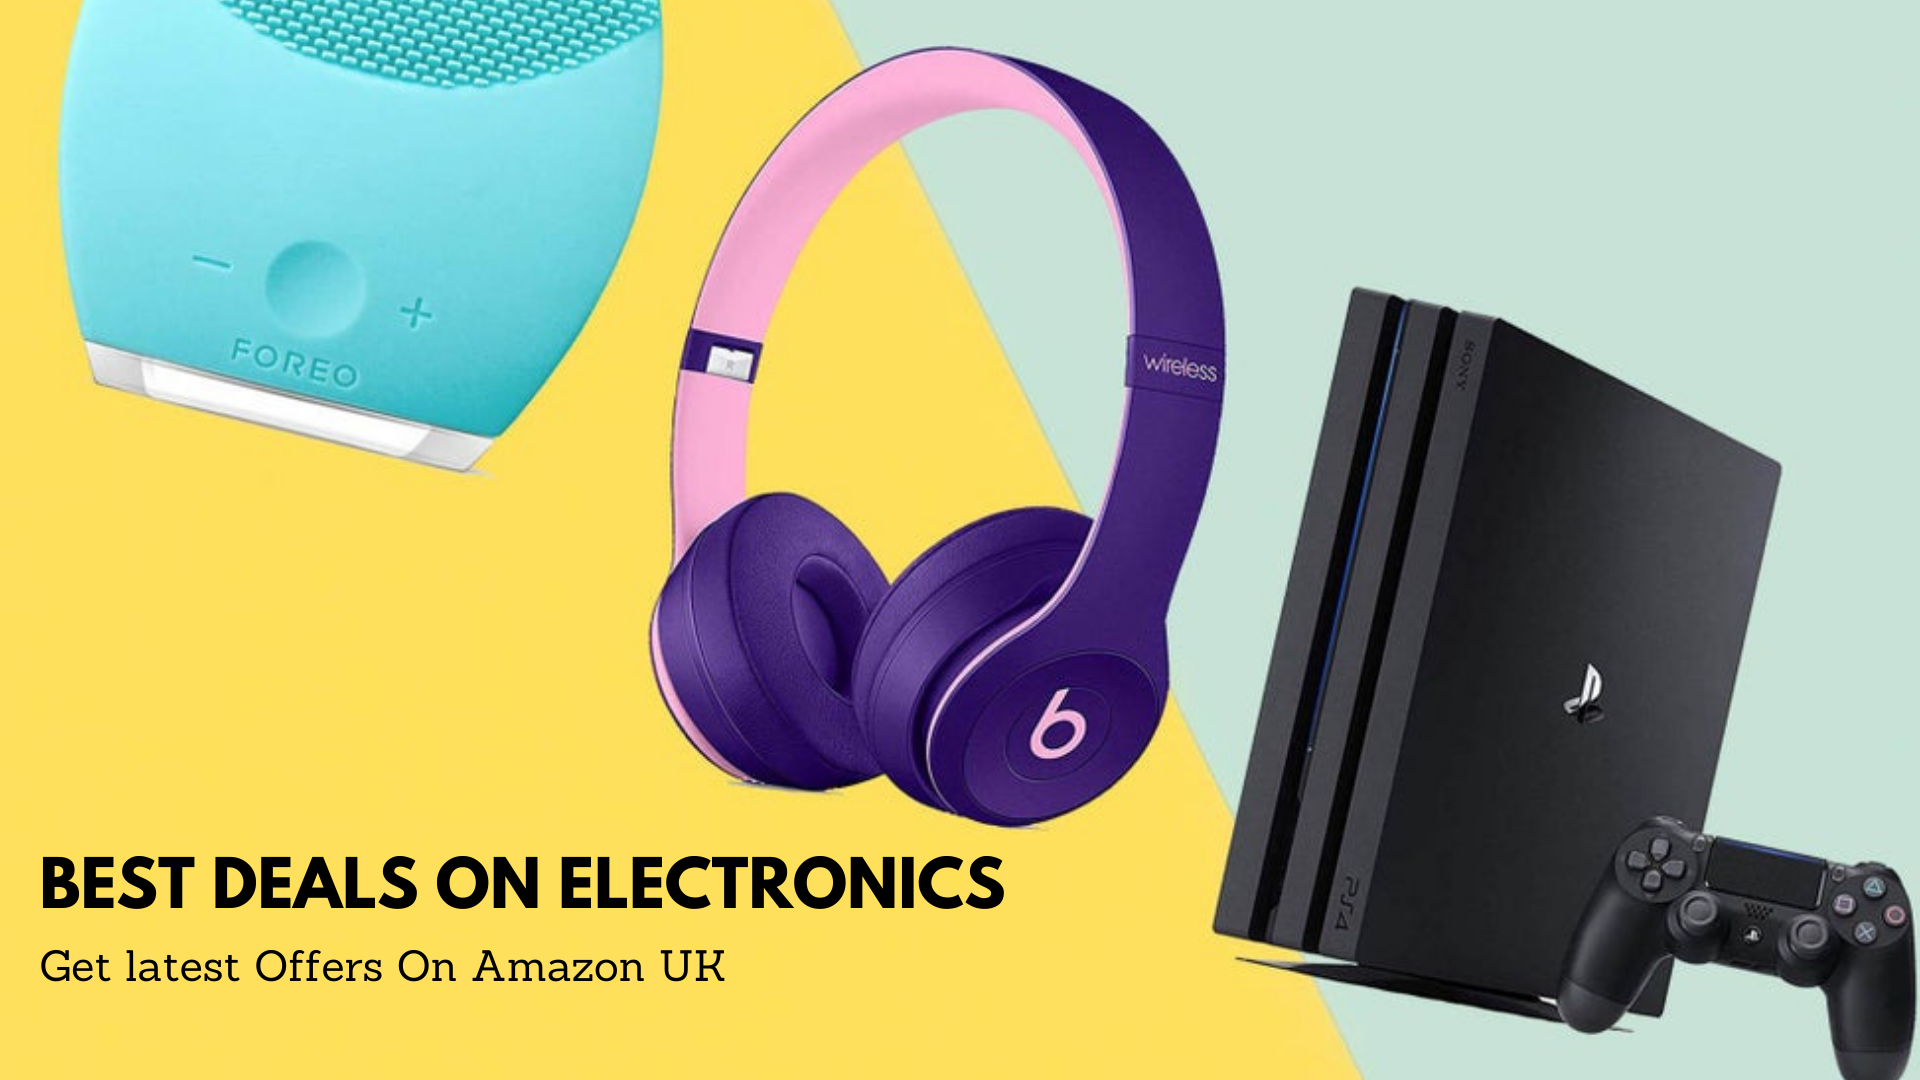 Amazon.co.uk Best Offers: The most popular items in Electronics